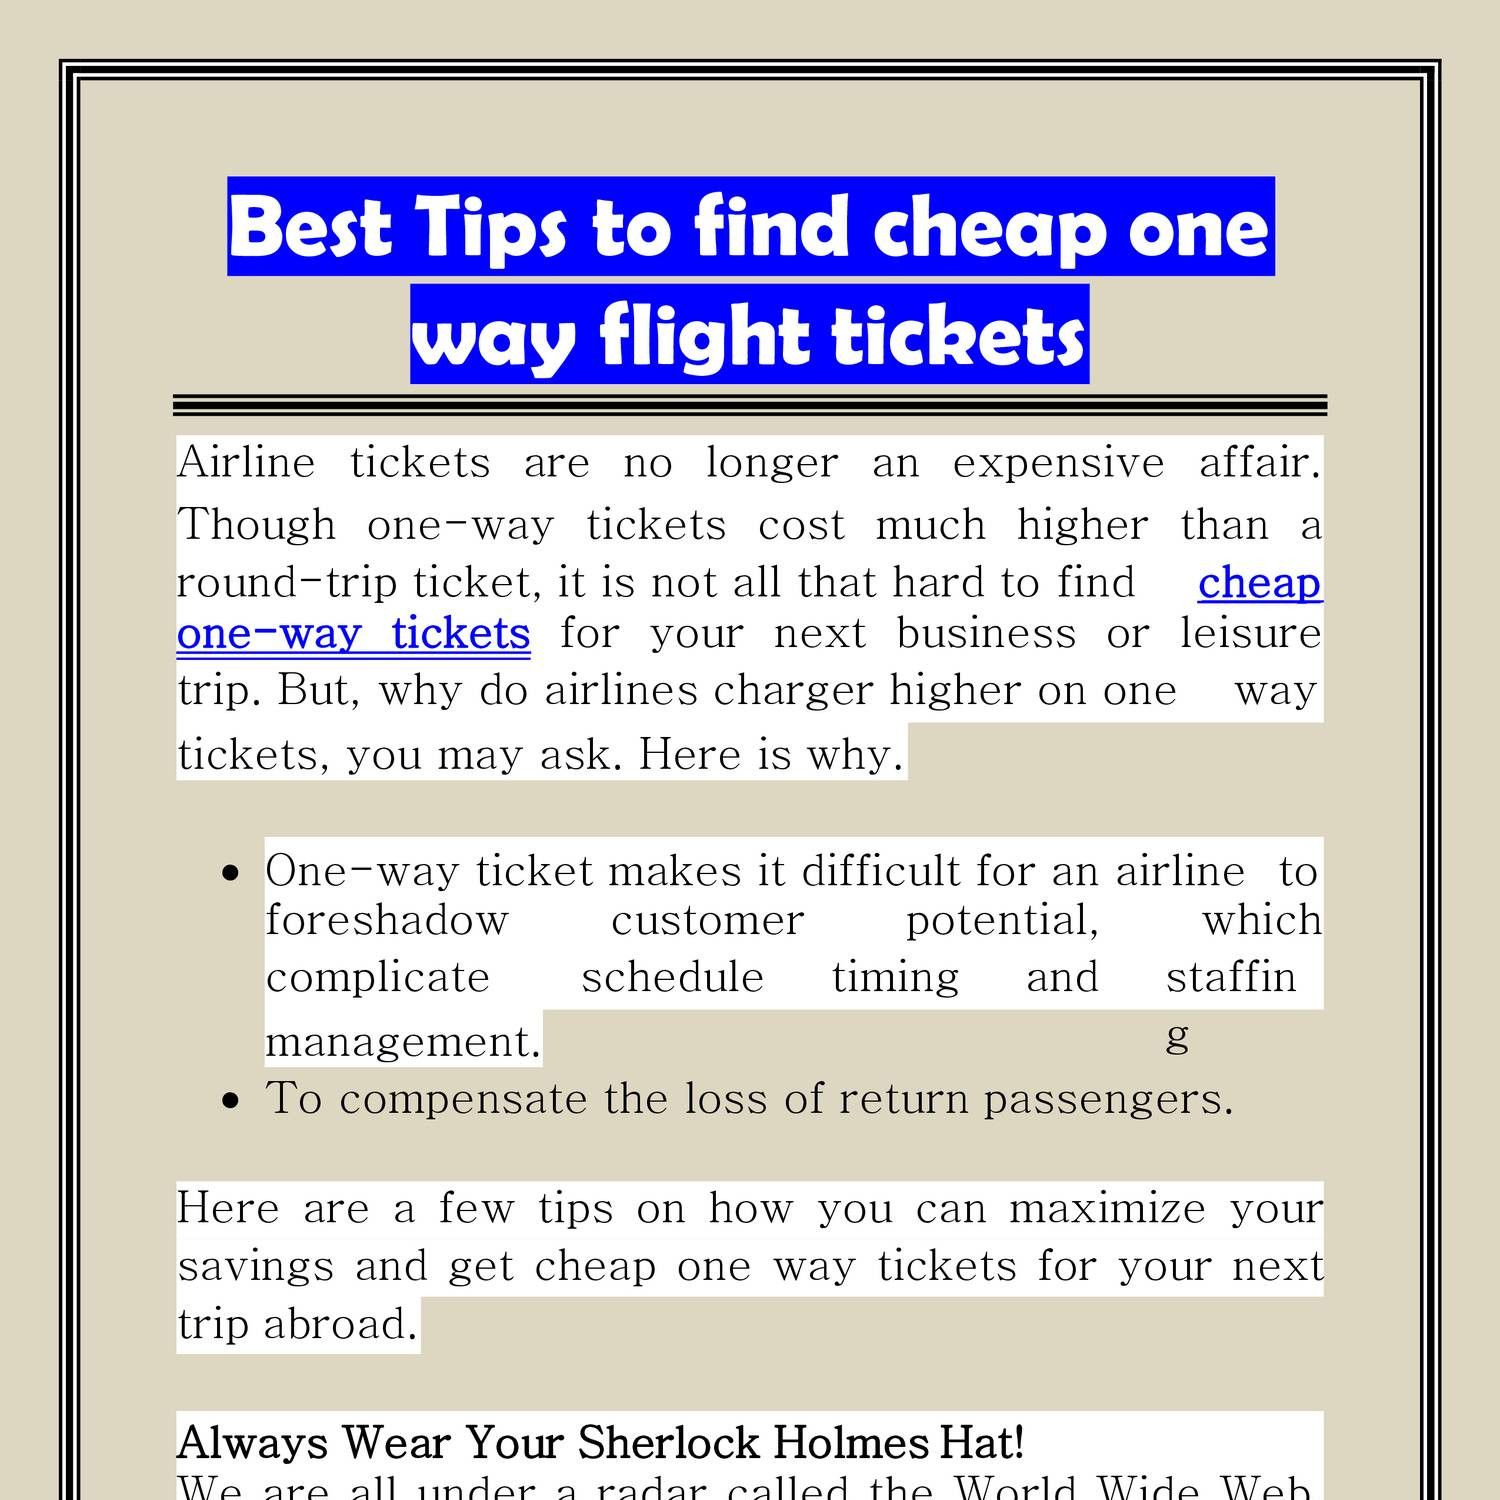 Cheap One Way Flights Best Tips To Find Cheap One Way Flight Tickets Pptx Docdroid